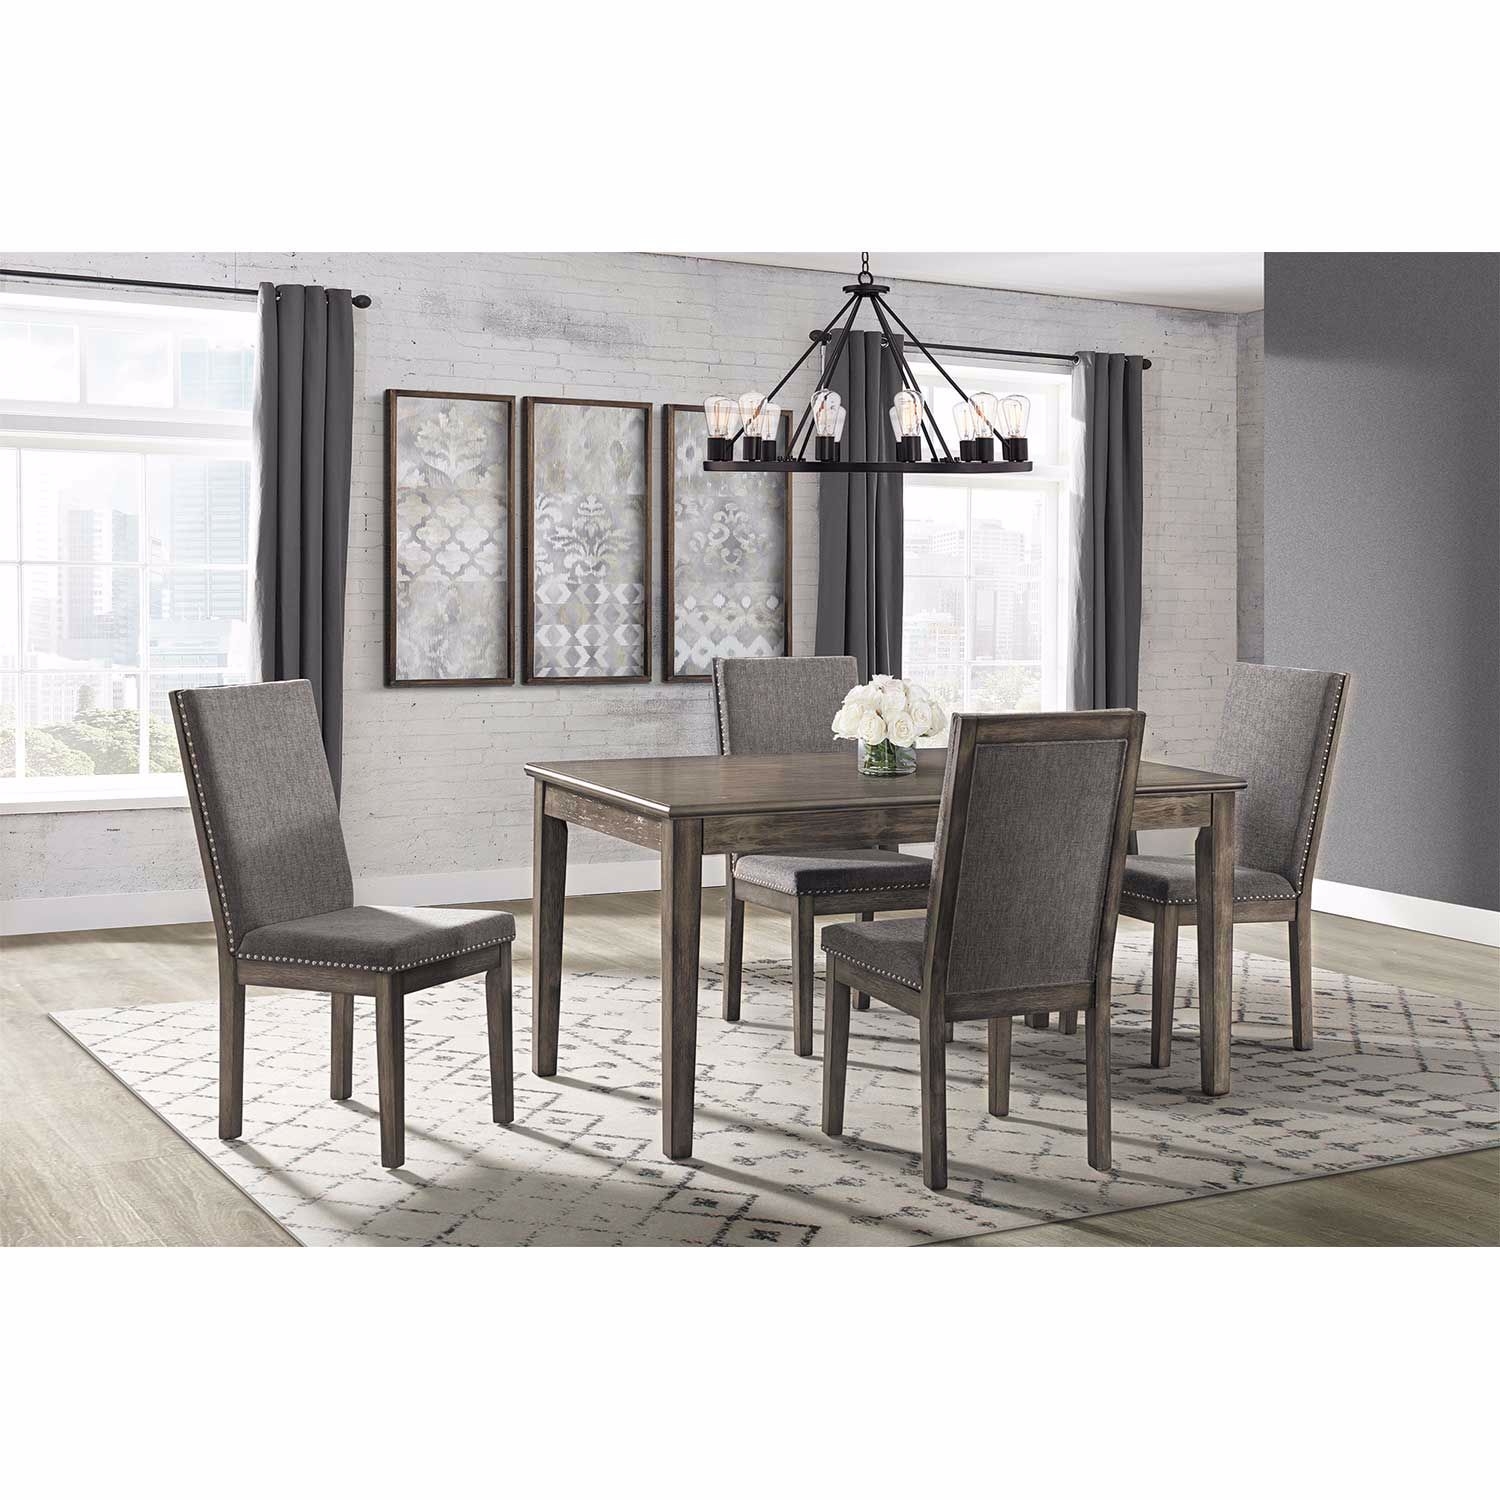 South Paw Rectangular Dining Table